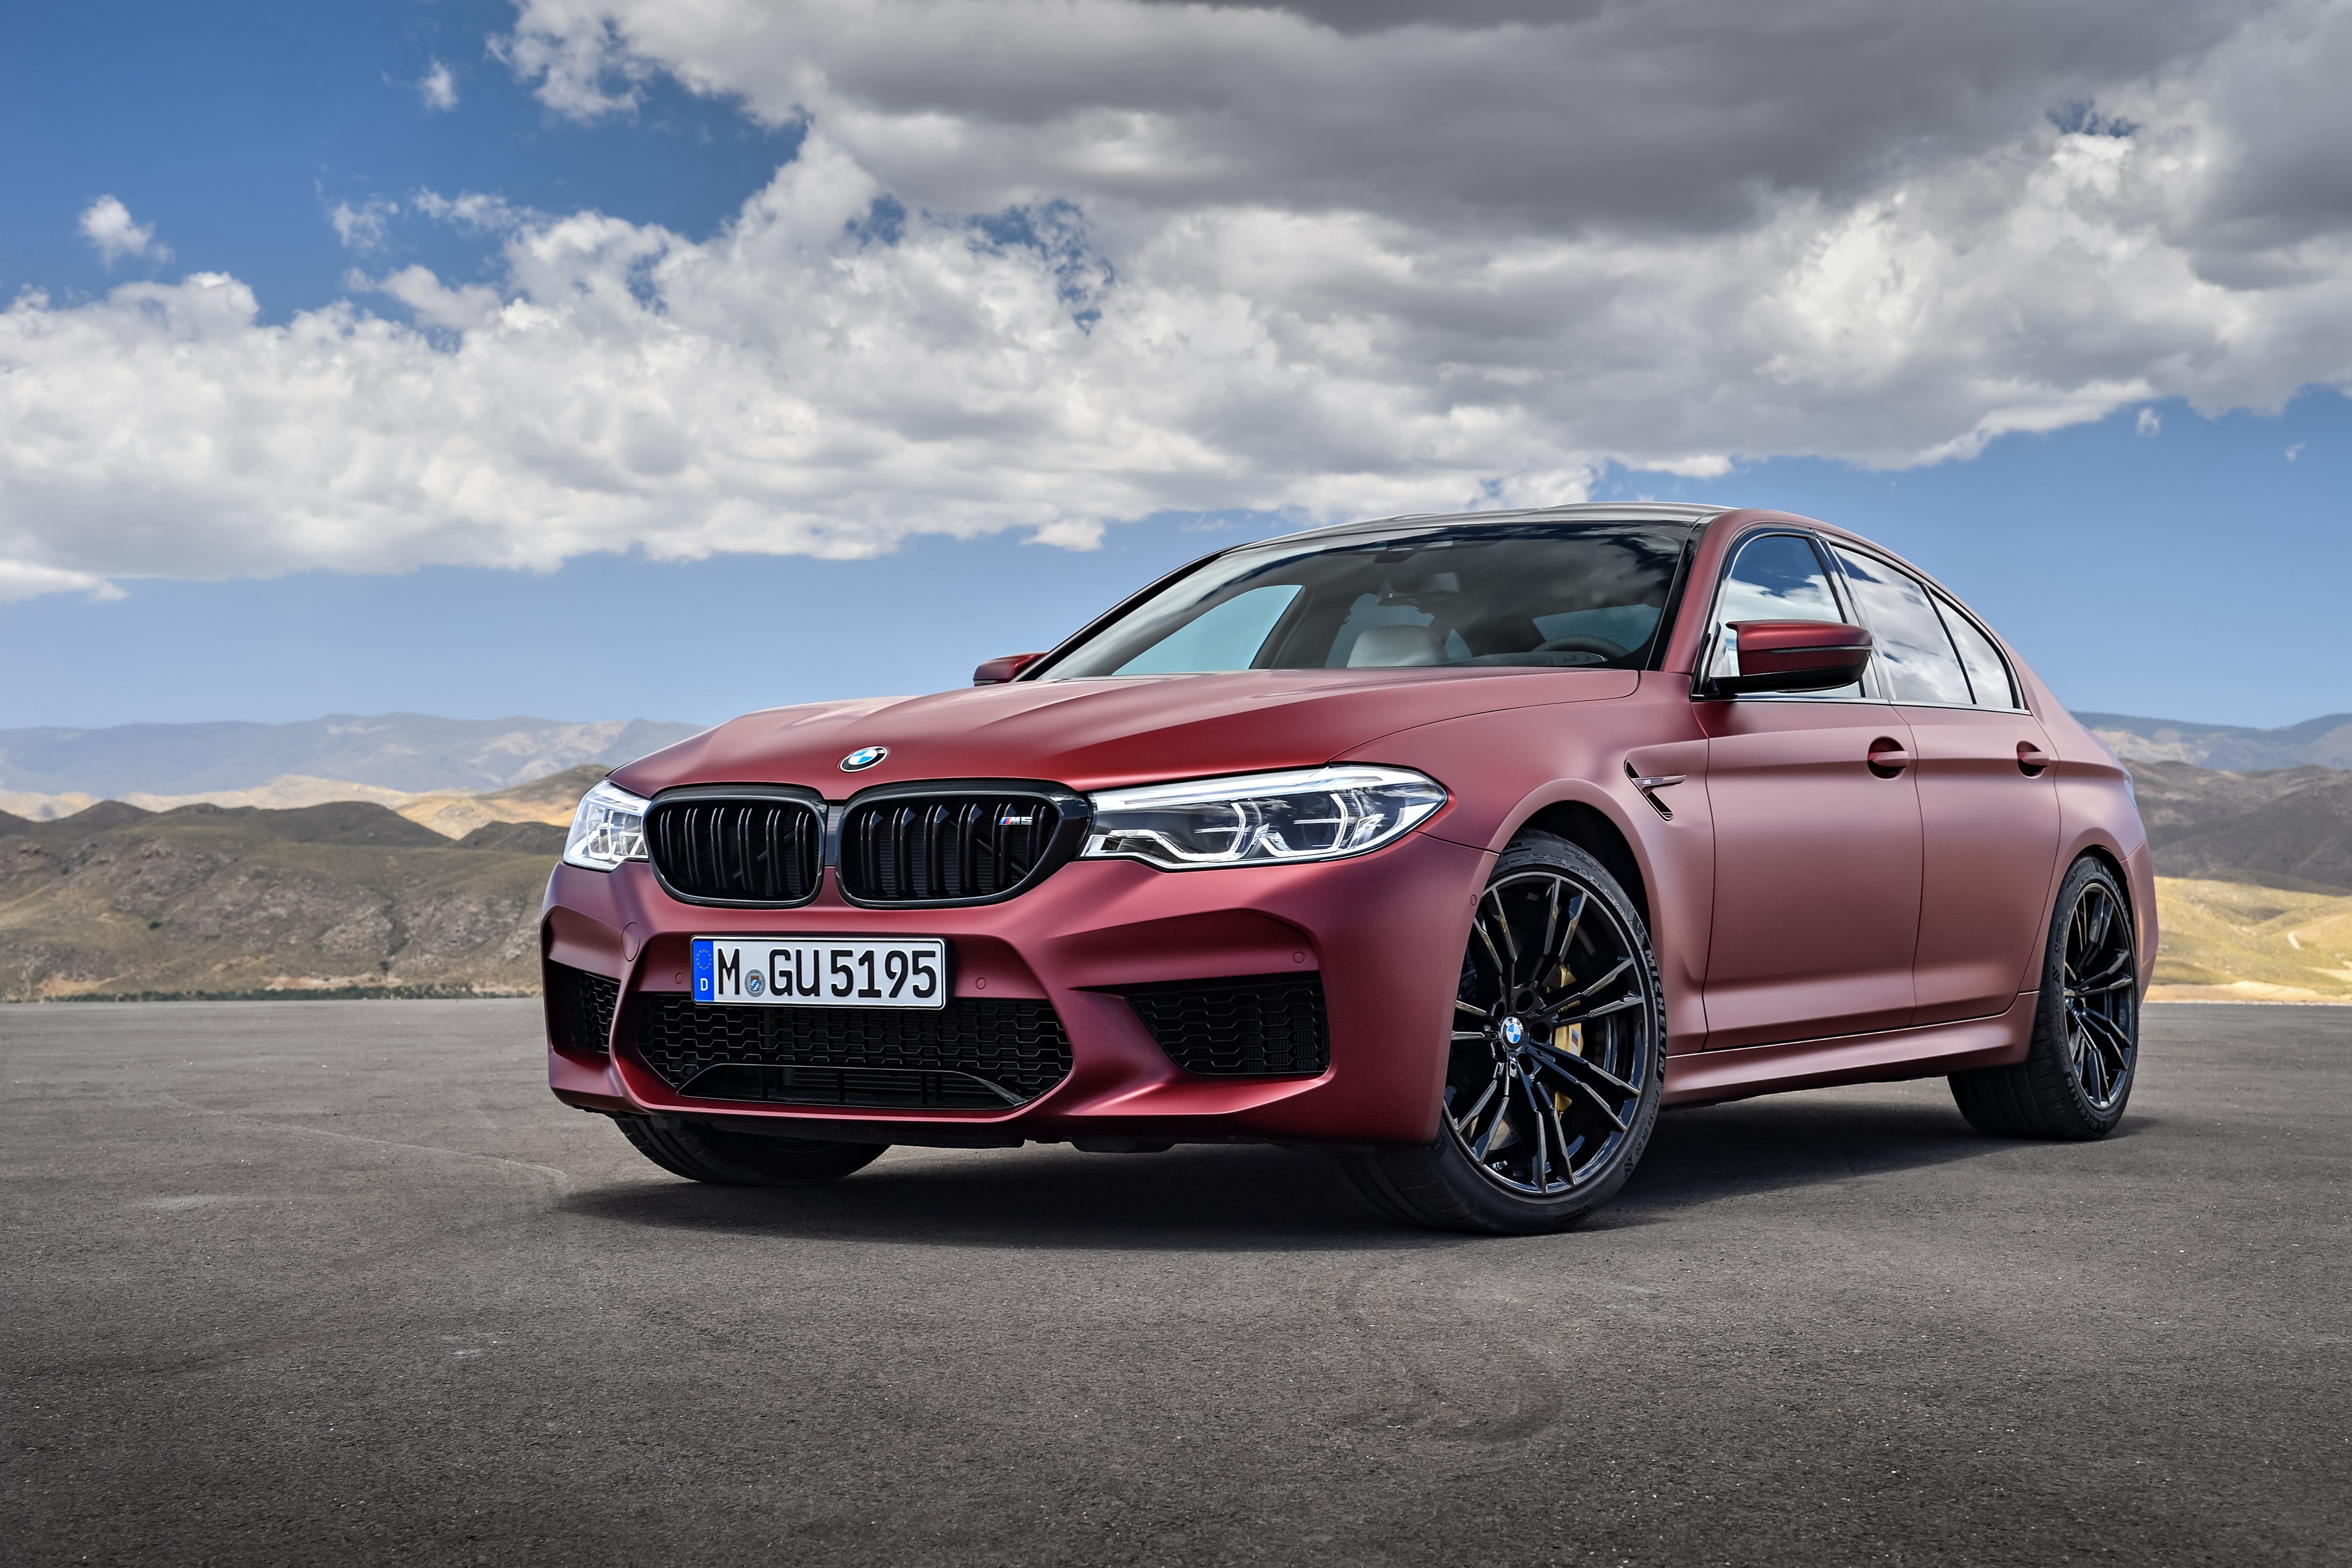 BMW M5 Wallpapers, Pictures, Images